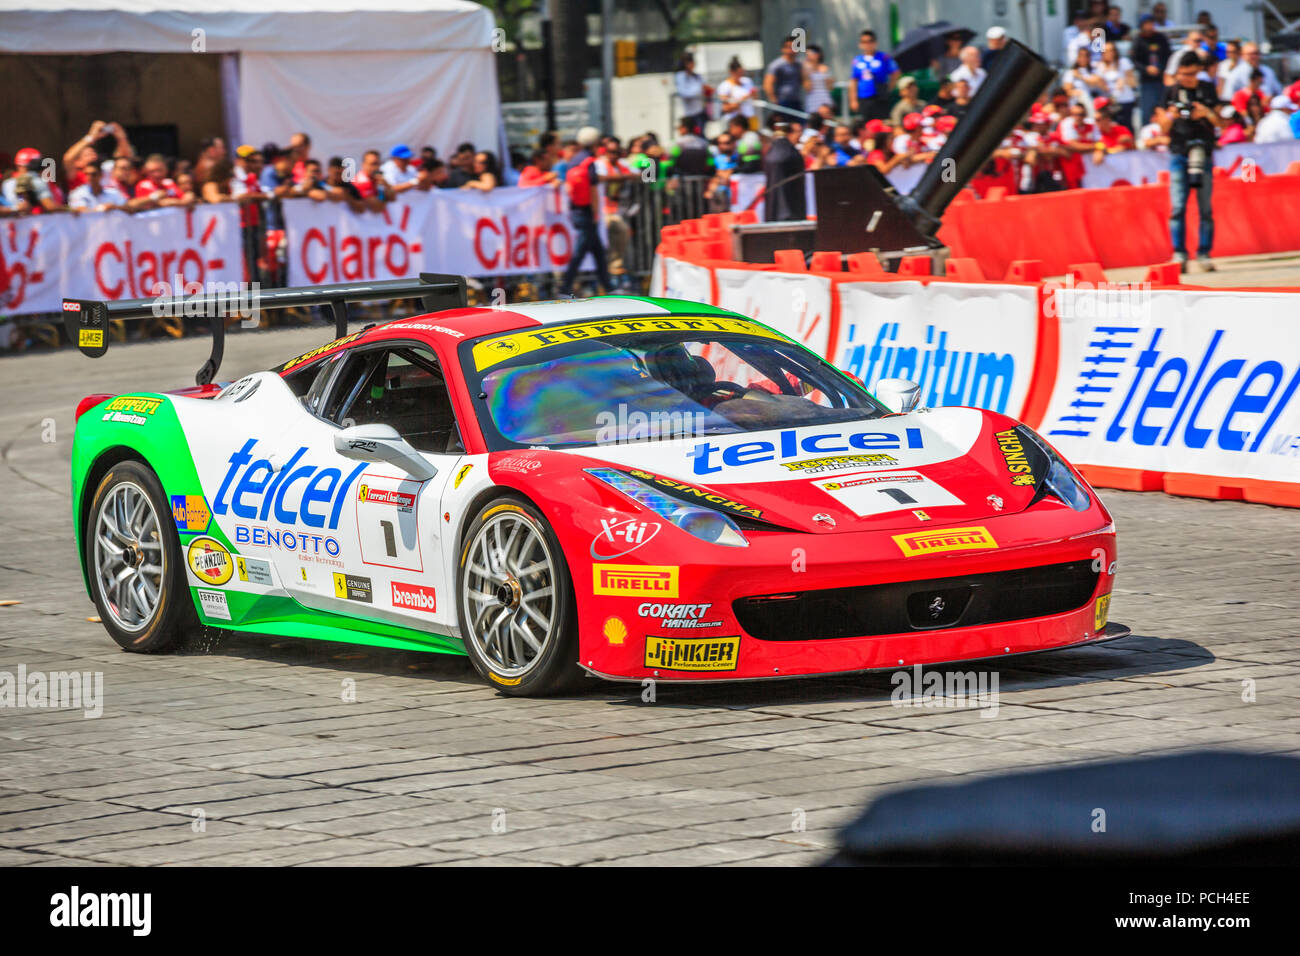 ferrari 458 challenge stock photos ferrari 458 challenge stock images alamy. Black Bedroom Furniture Sets. Home Design Ideas